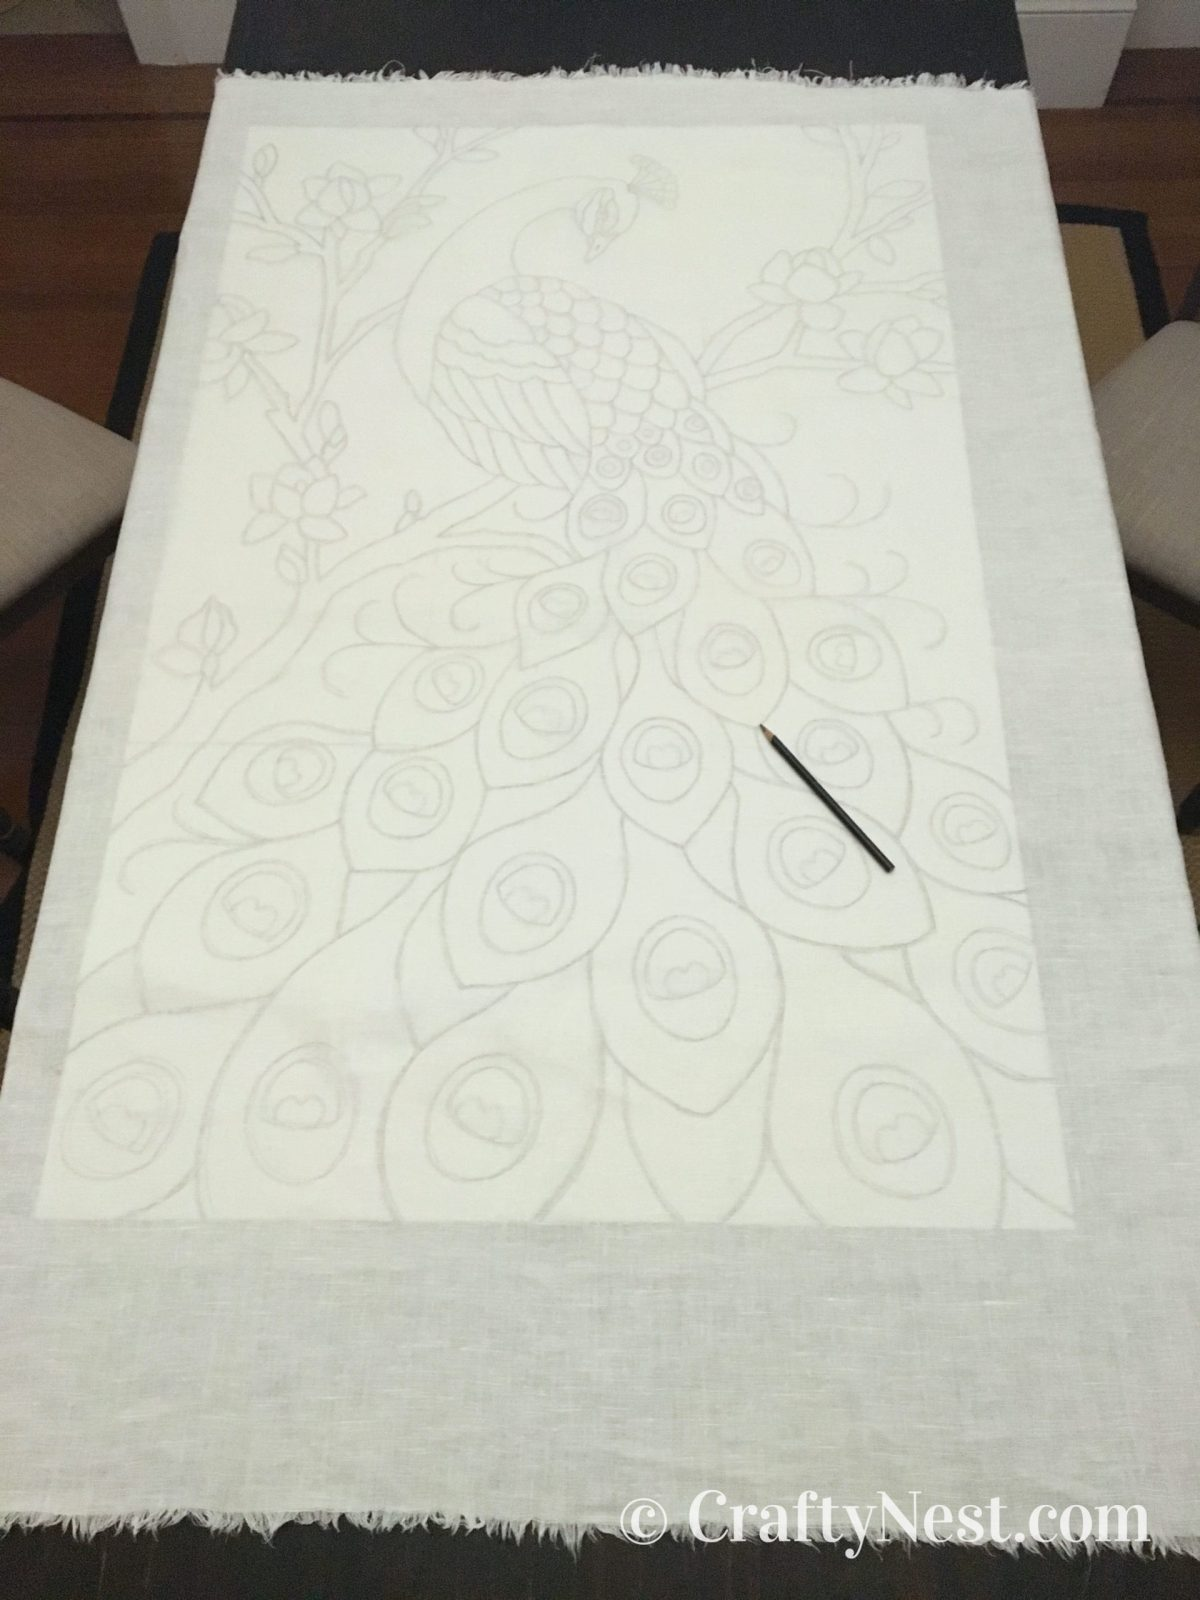 Trace the pattern onto the fabric, photo